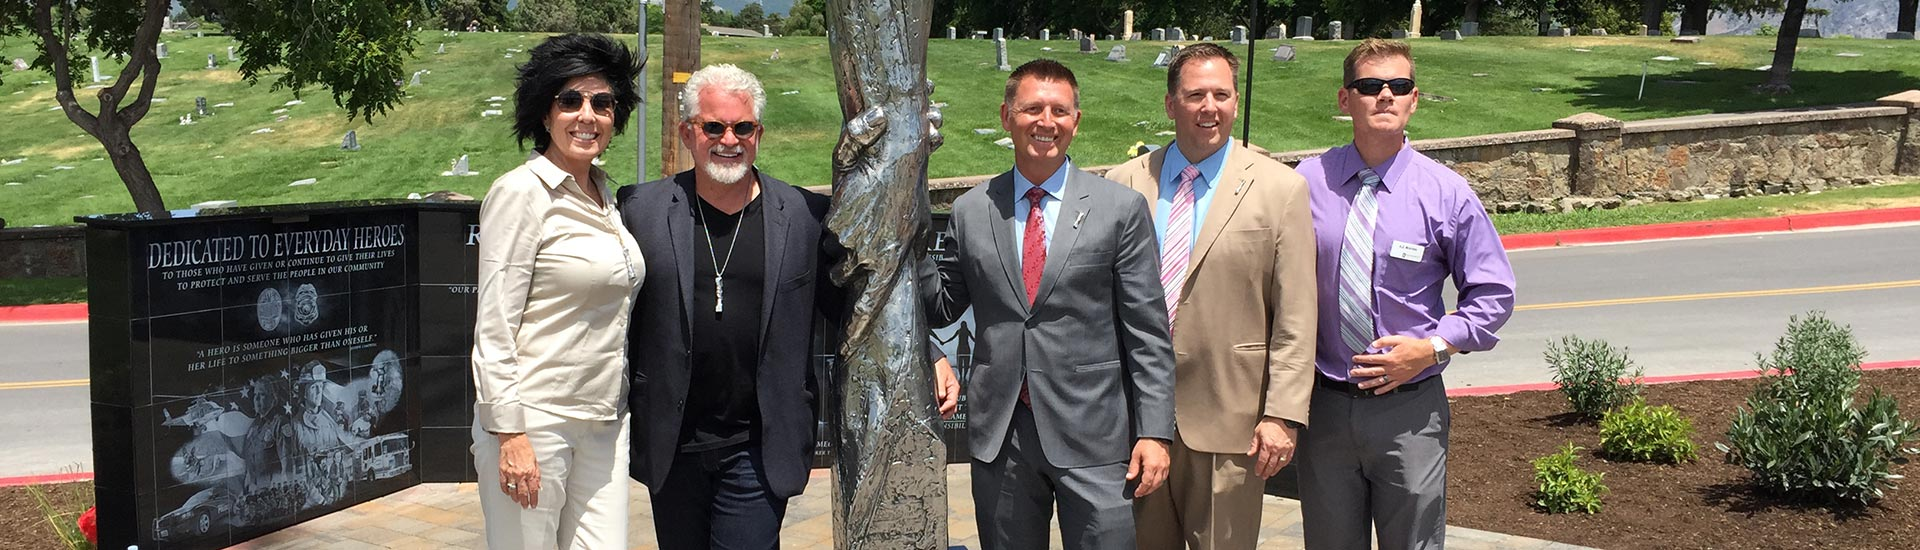 Statue of Responsibility Dedicated in American Fork